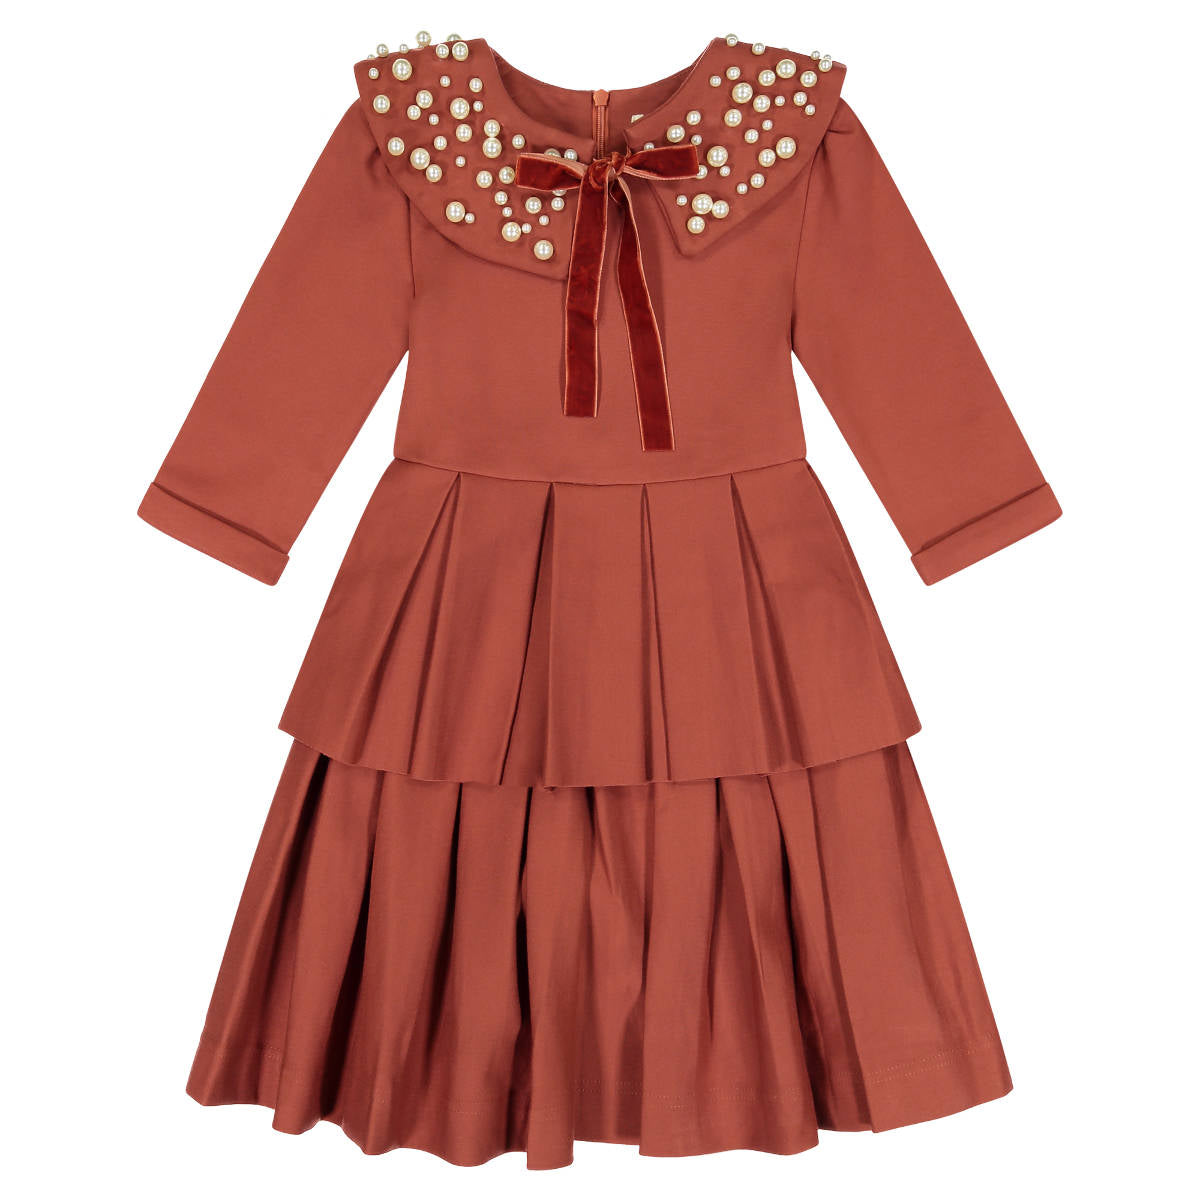 Teela Rust Orange Circle Dress with Double Peplum